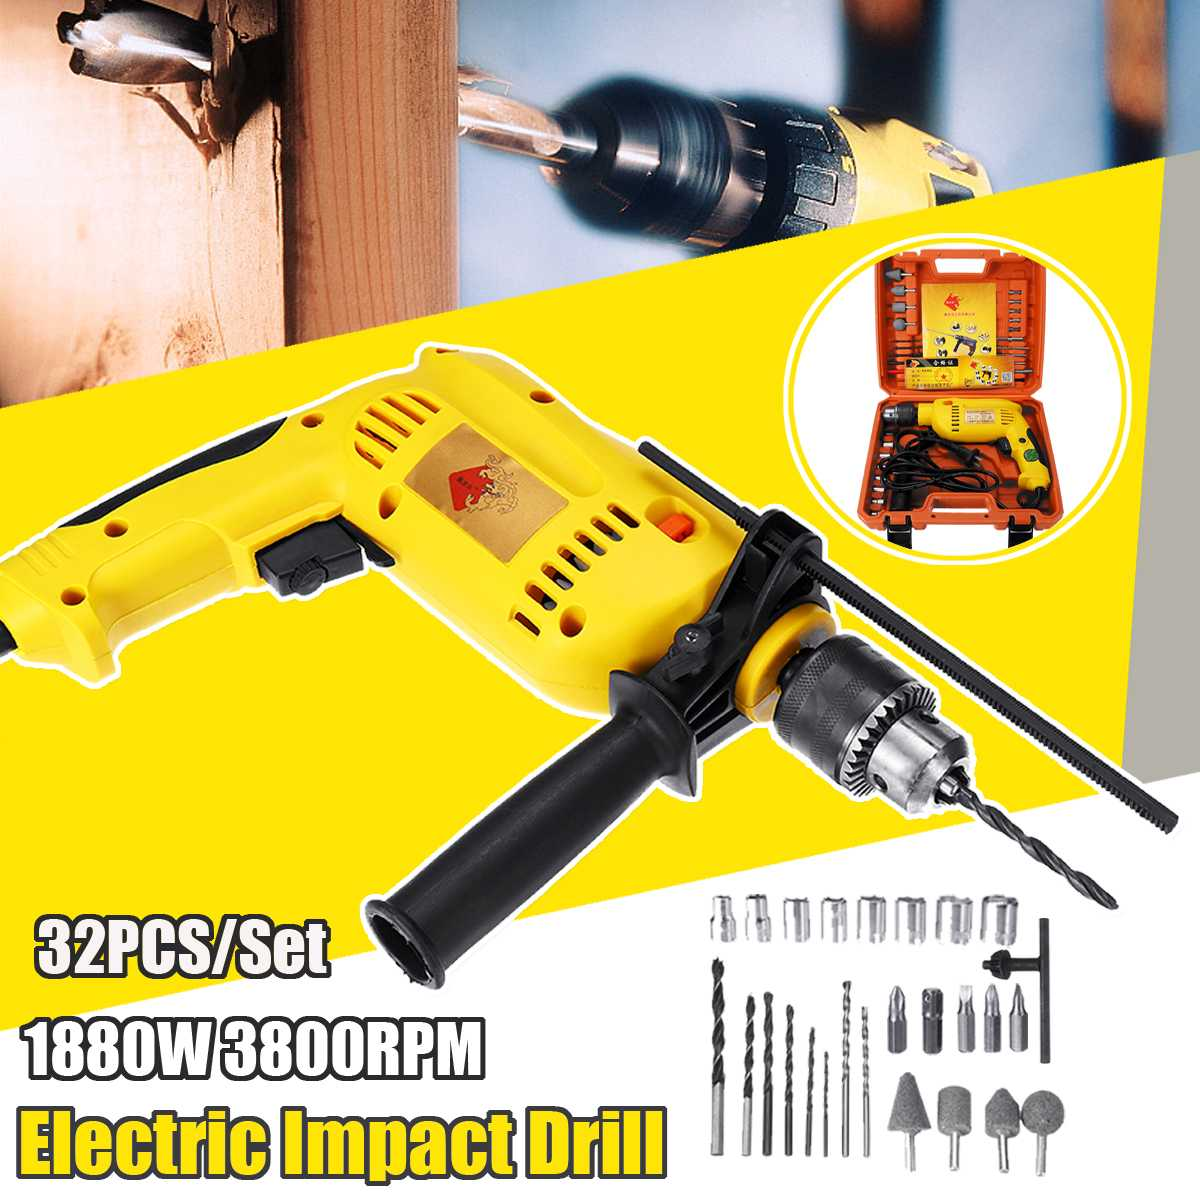 220V Electric Impact Drill 1880W Brushless Motor Cordless Electrical Impact Wrench Cordless Drill Power Tools220V Electric Impact Drill 1880W Brushless Motor Cordless Electrical Impact Wrench Cordless Drill Power Tools